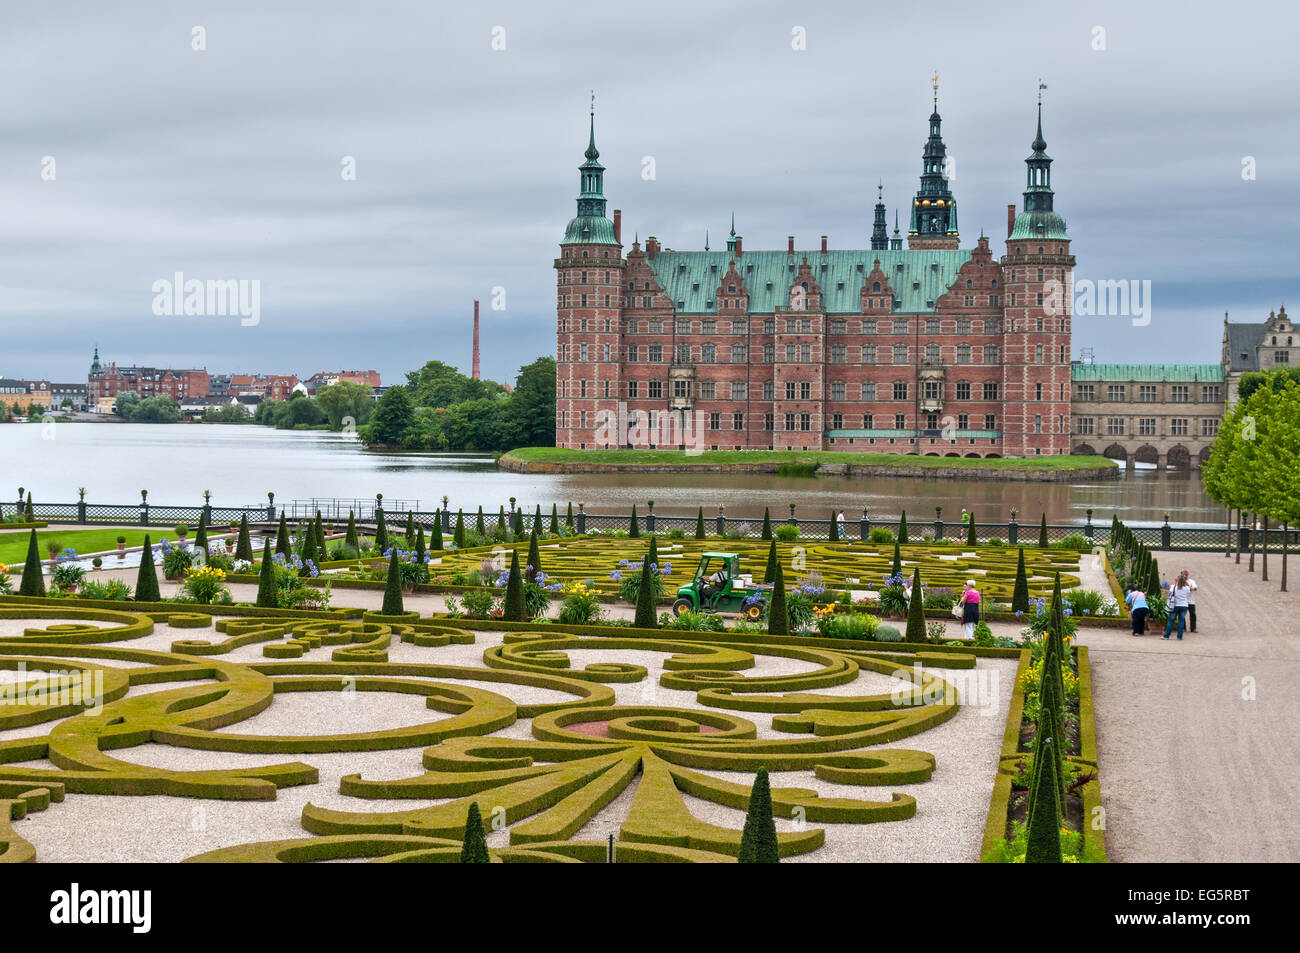 Tourists visiting the Frederiksborg palace and the baroque gardens in nasty weather. - Stock Image